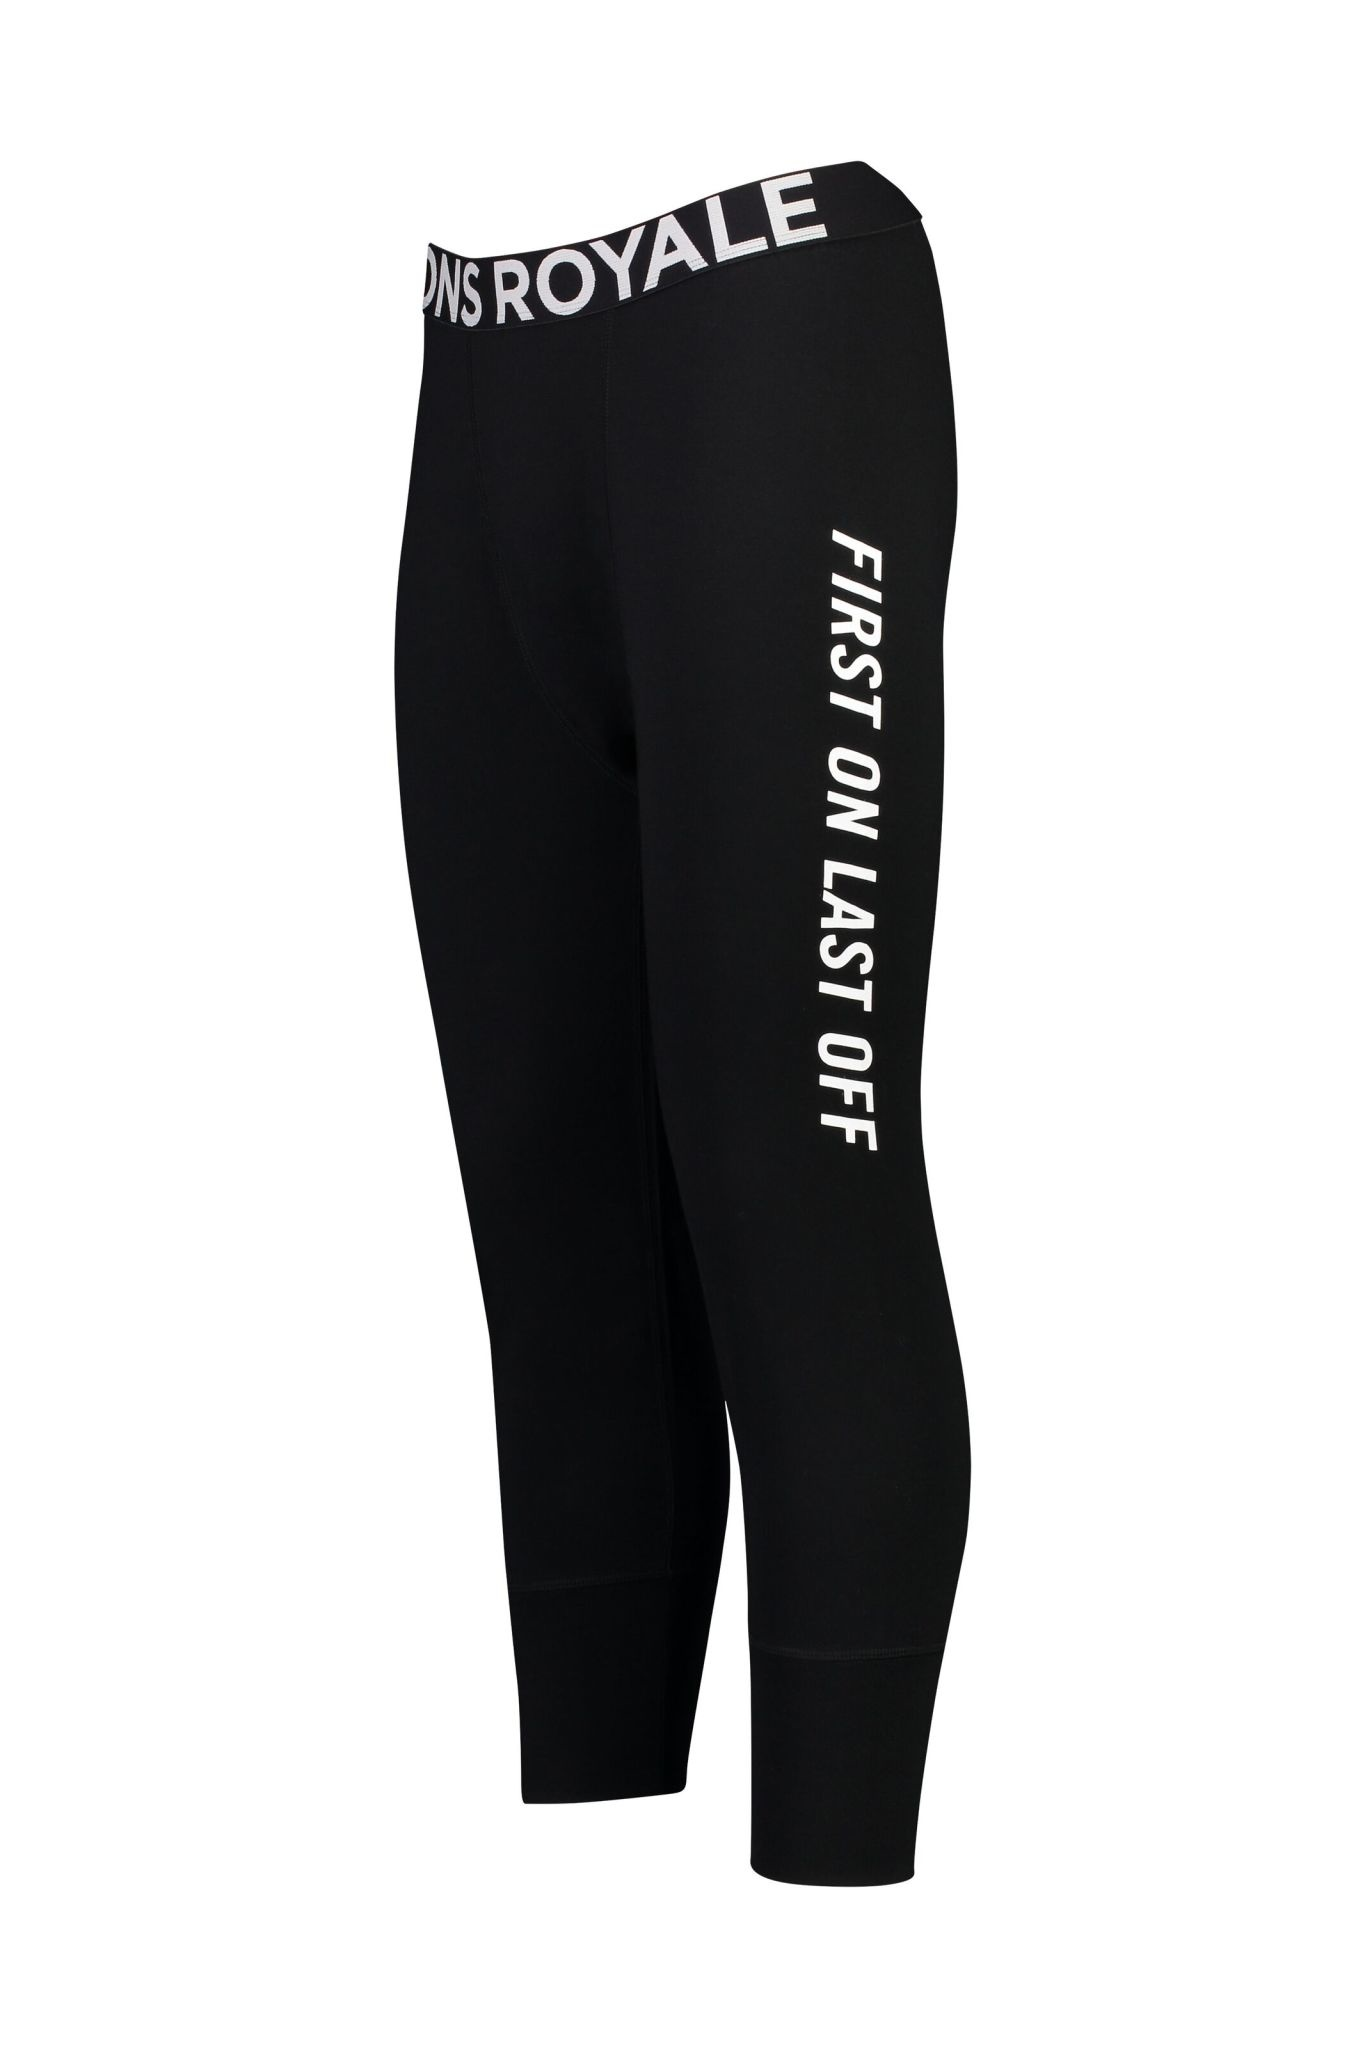 MONS ROYALE Mons Royale Men's Shaun-off 3/4 Legging